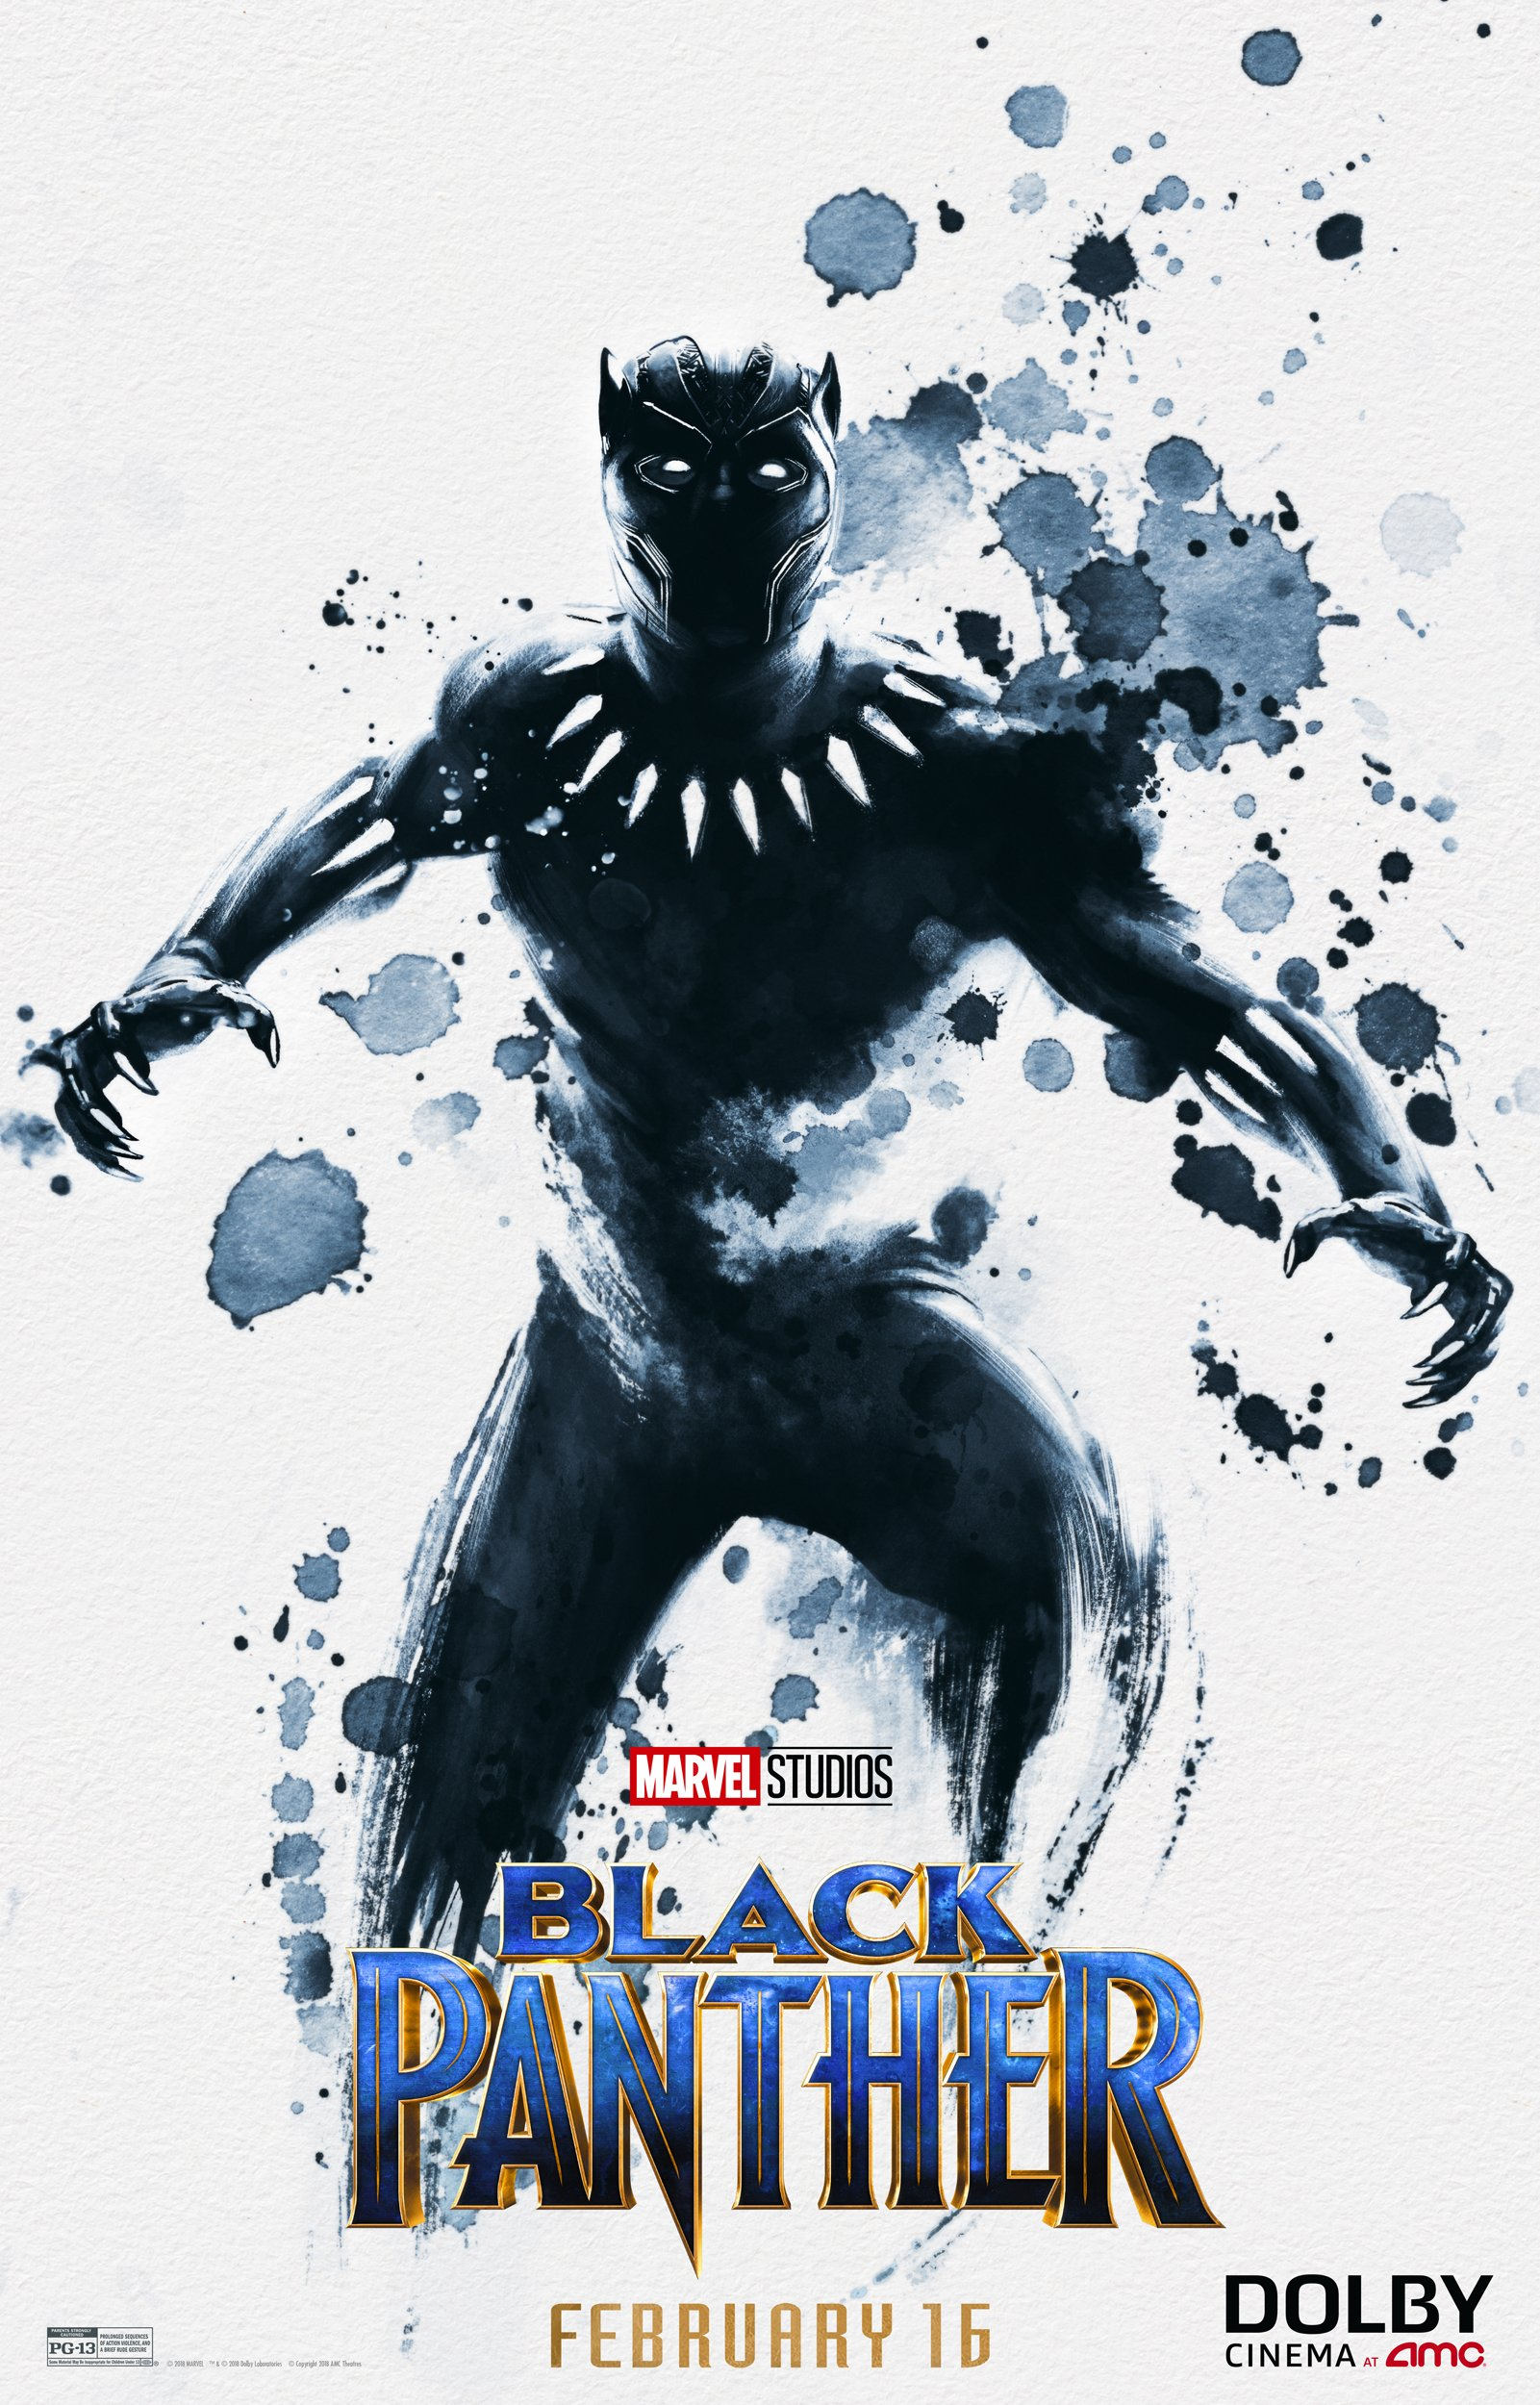 Black Panther Dolby Cinemas poster